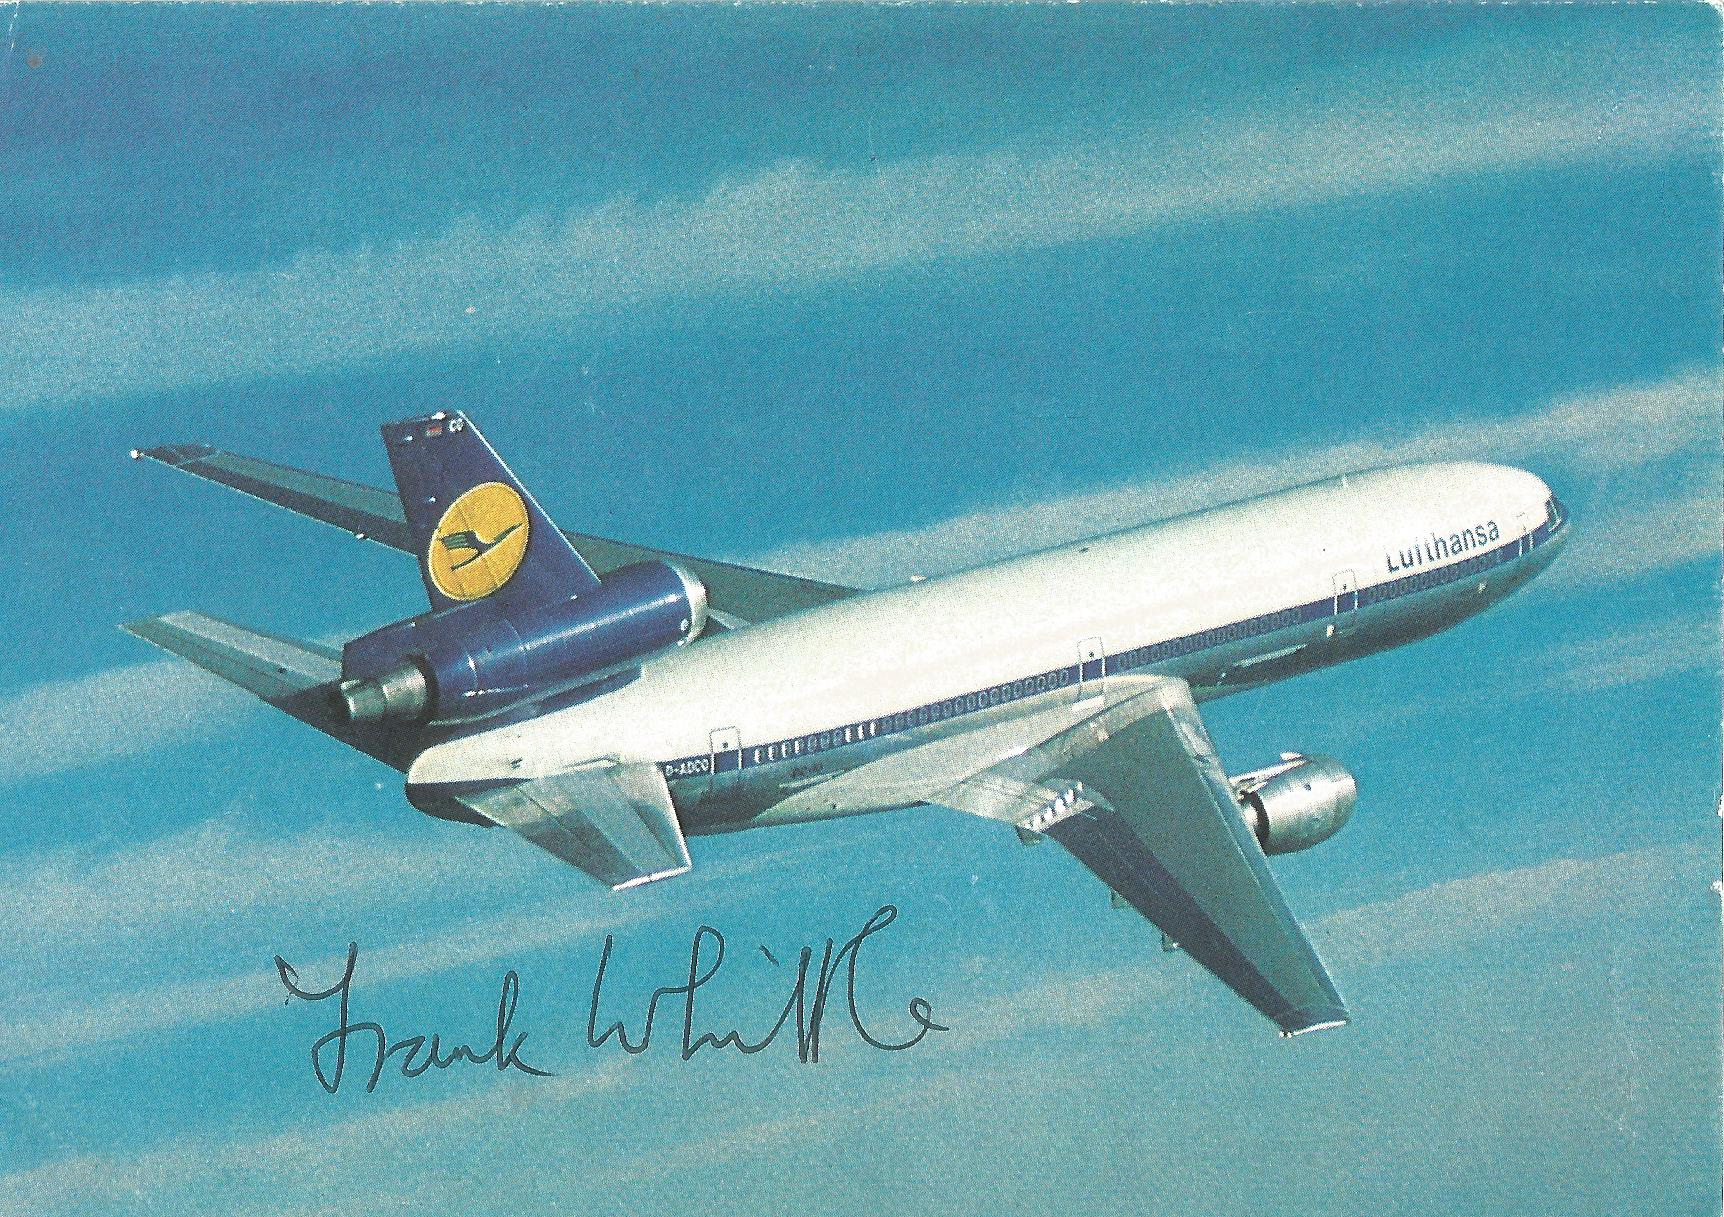 Lot 38 - Frank Whittle Jet Engine designer signed 6 x 4 colour DC10 in flight postcard. Good Condition. All